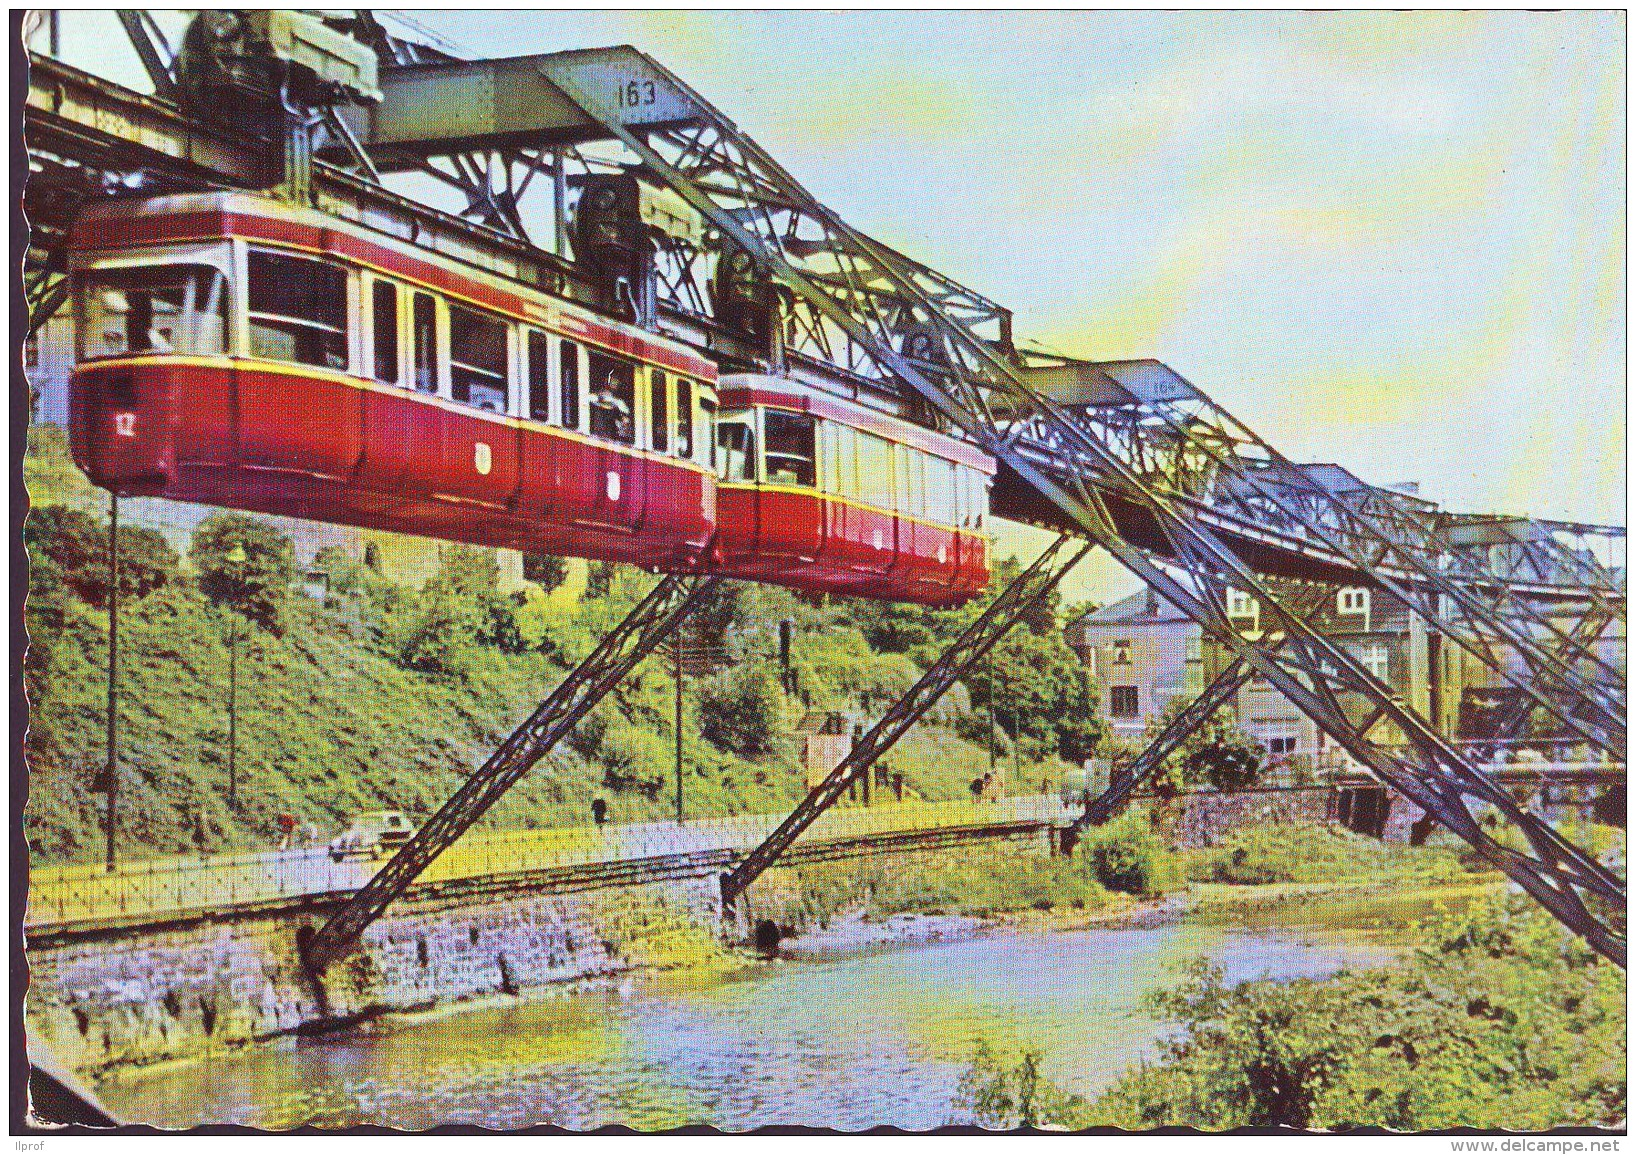 Monorotaia In Wuppertal (Germania) - Trains